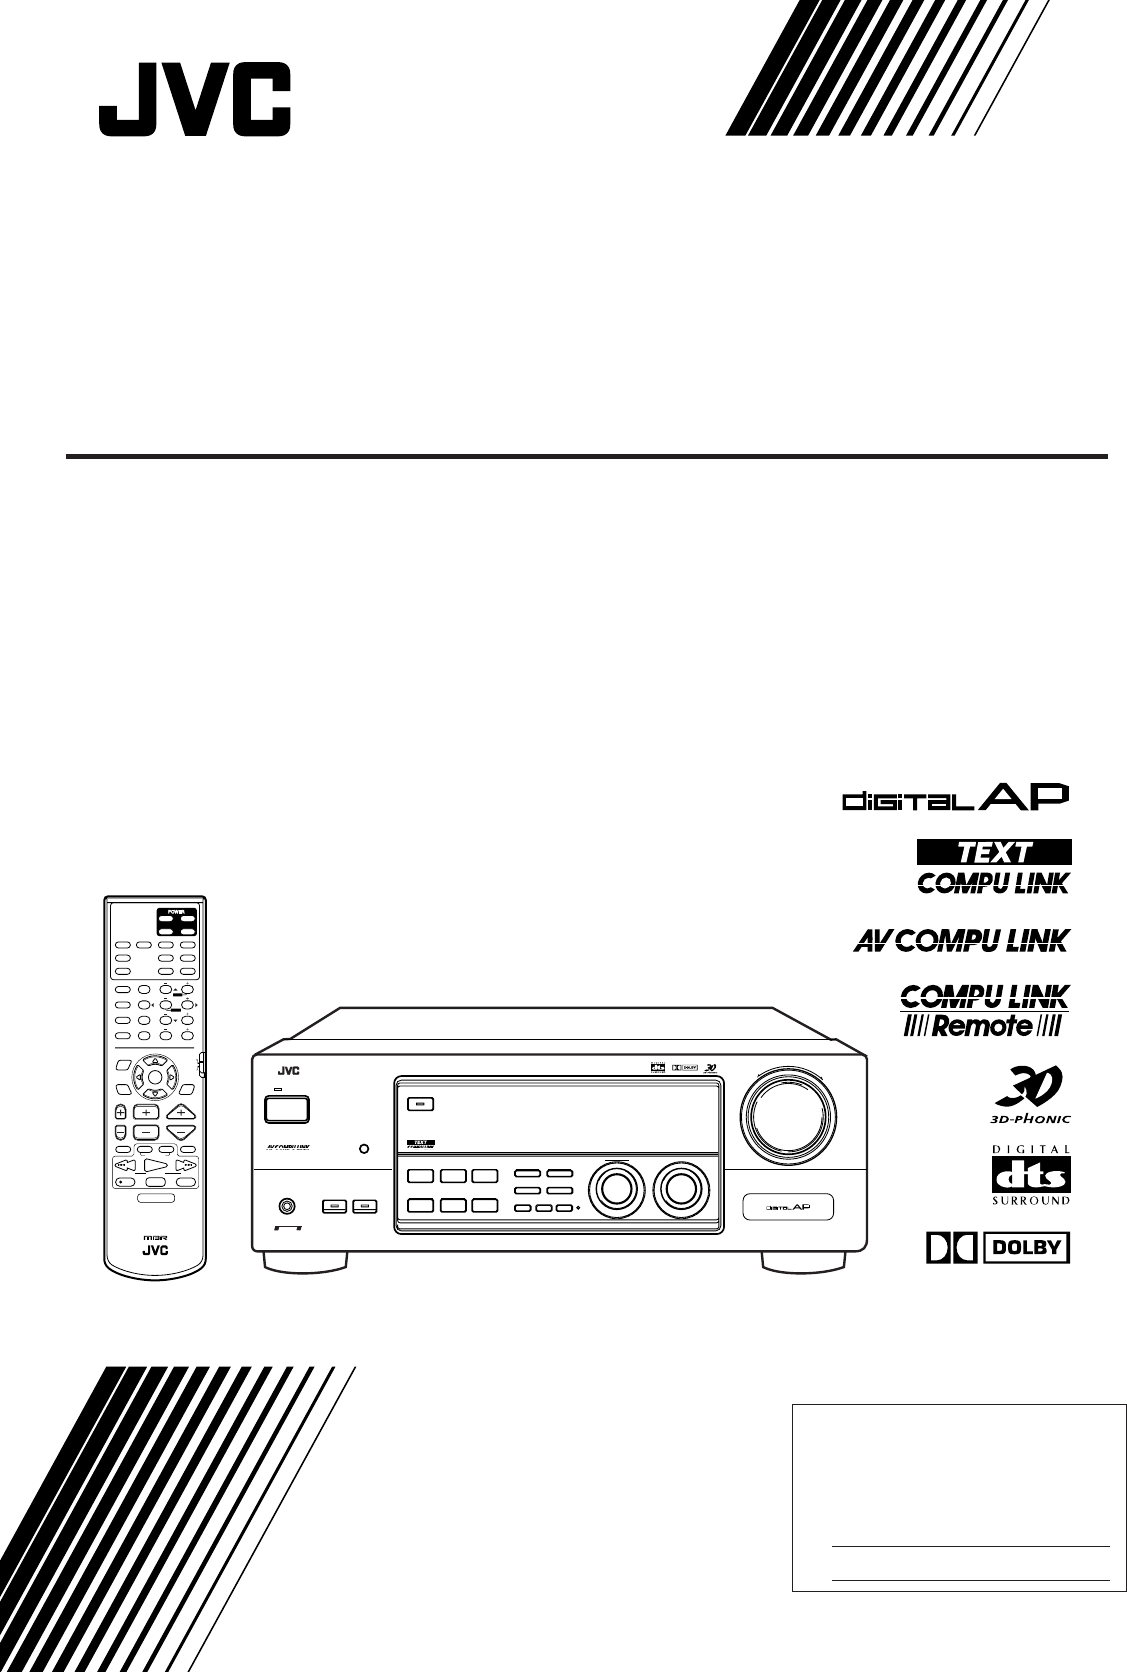 The Wiring Diagram For The 1982 Lhd Biturbo